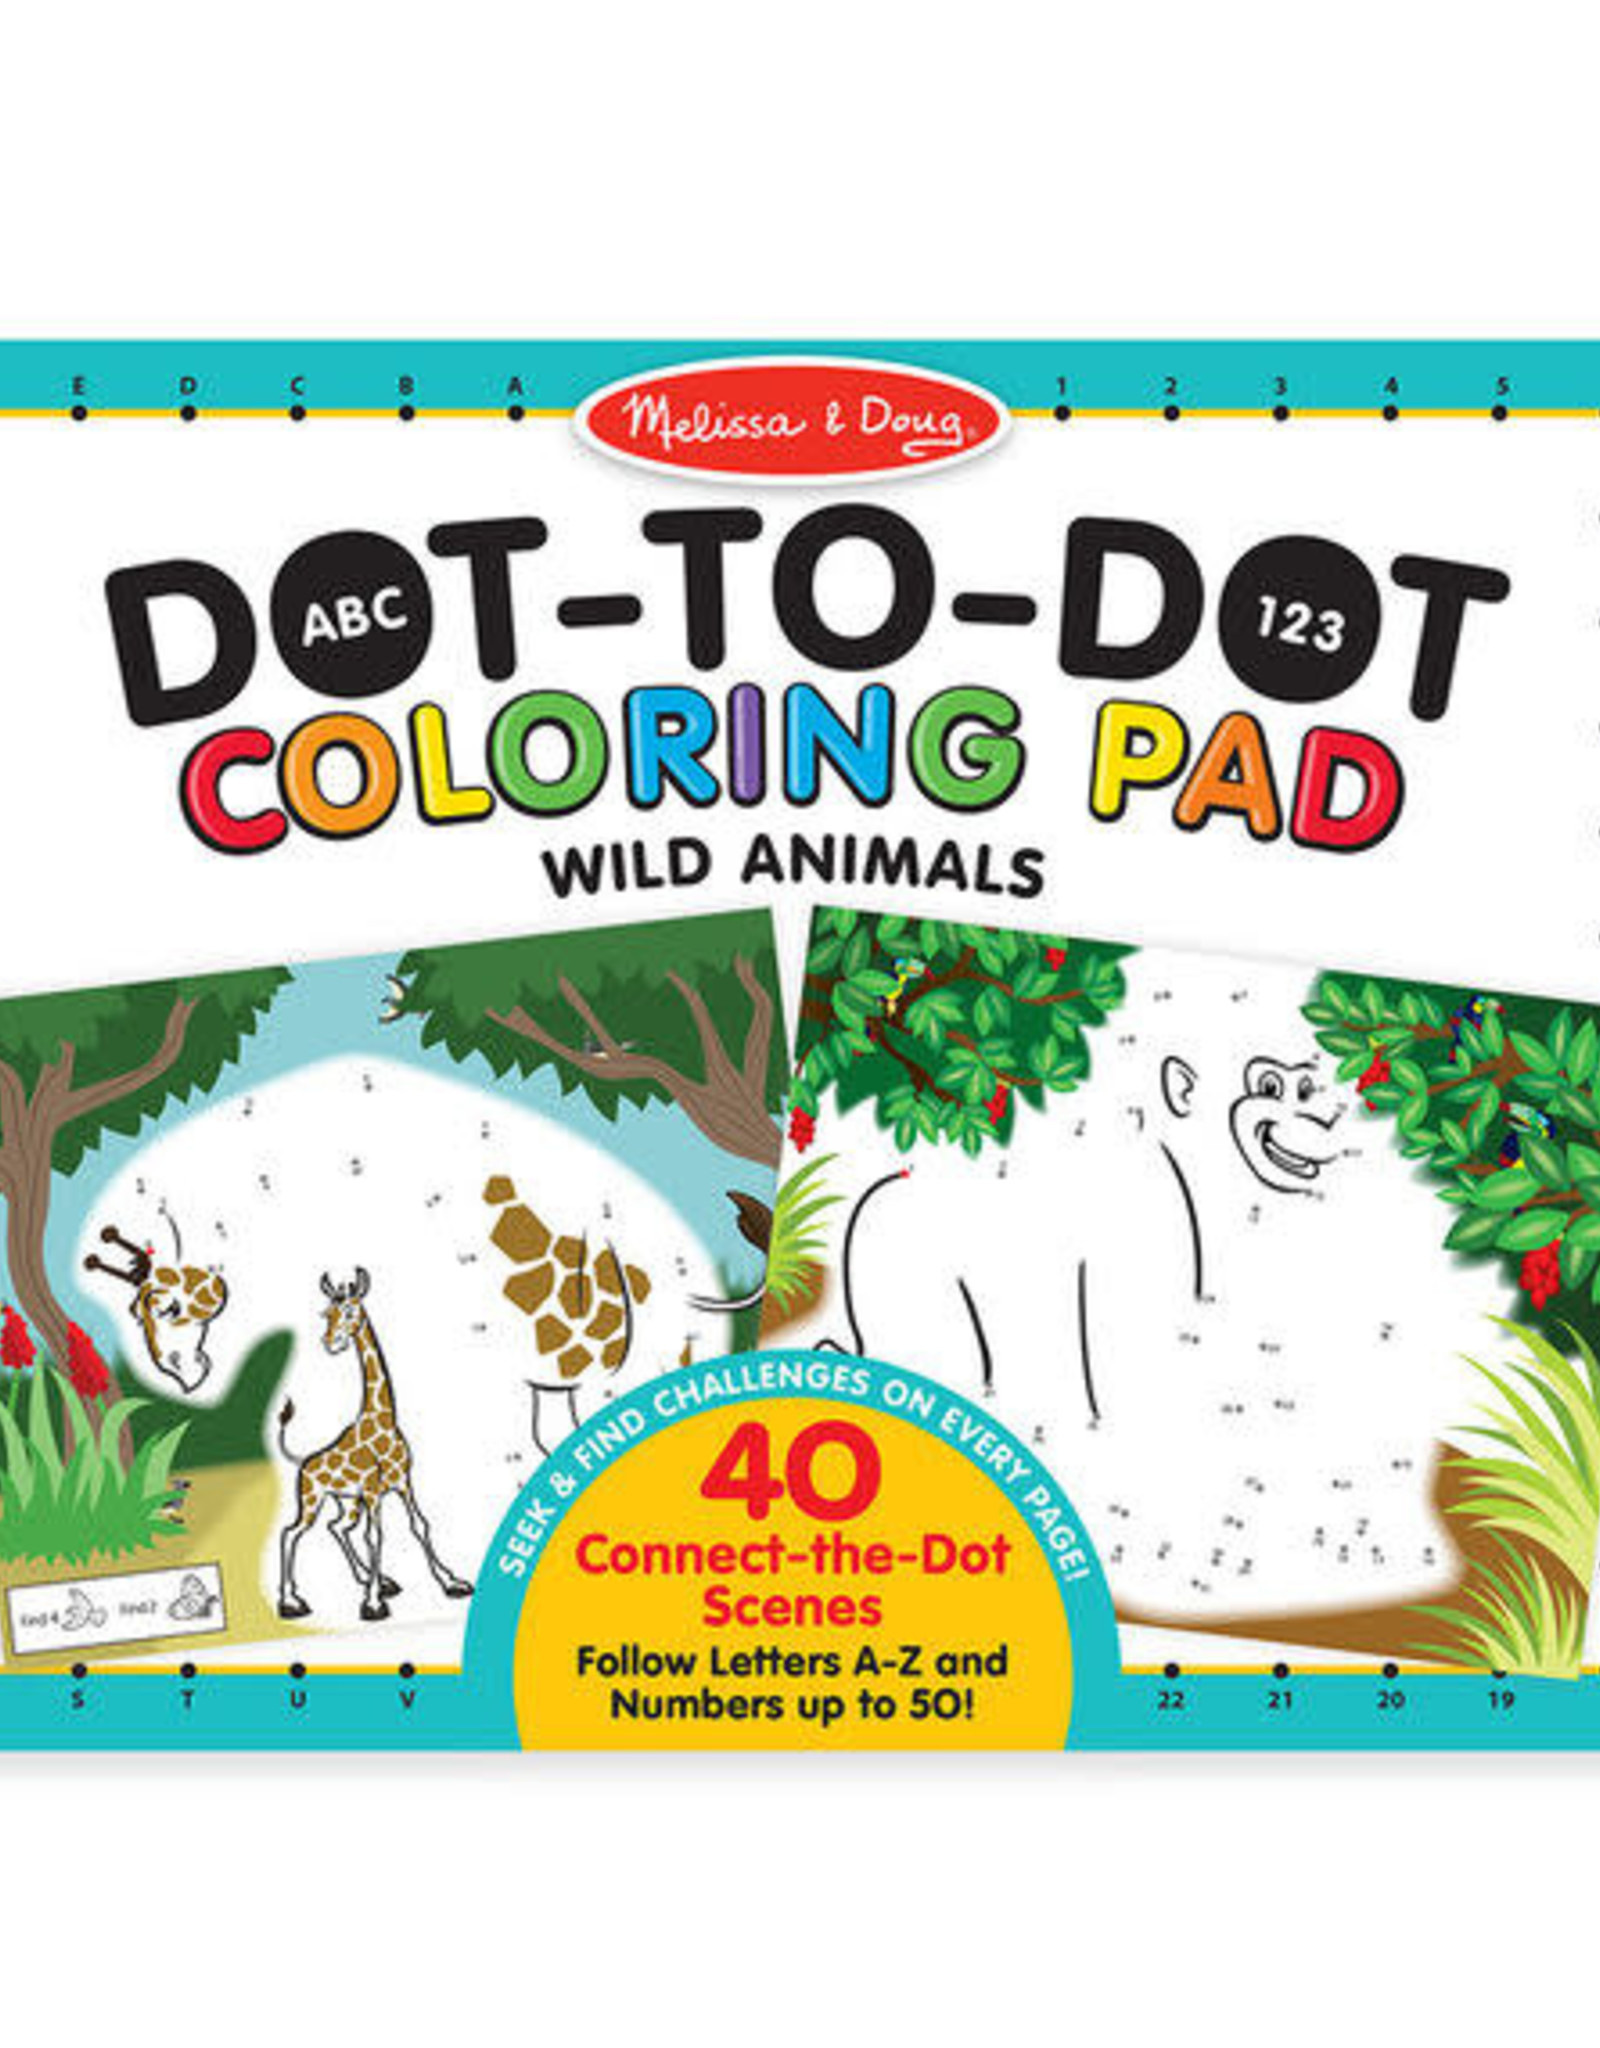 Melissa & Doug MD Coloring Pad Dot to Dot Wild Animal